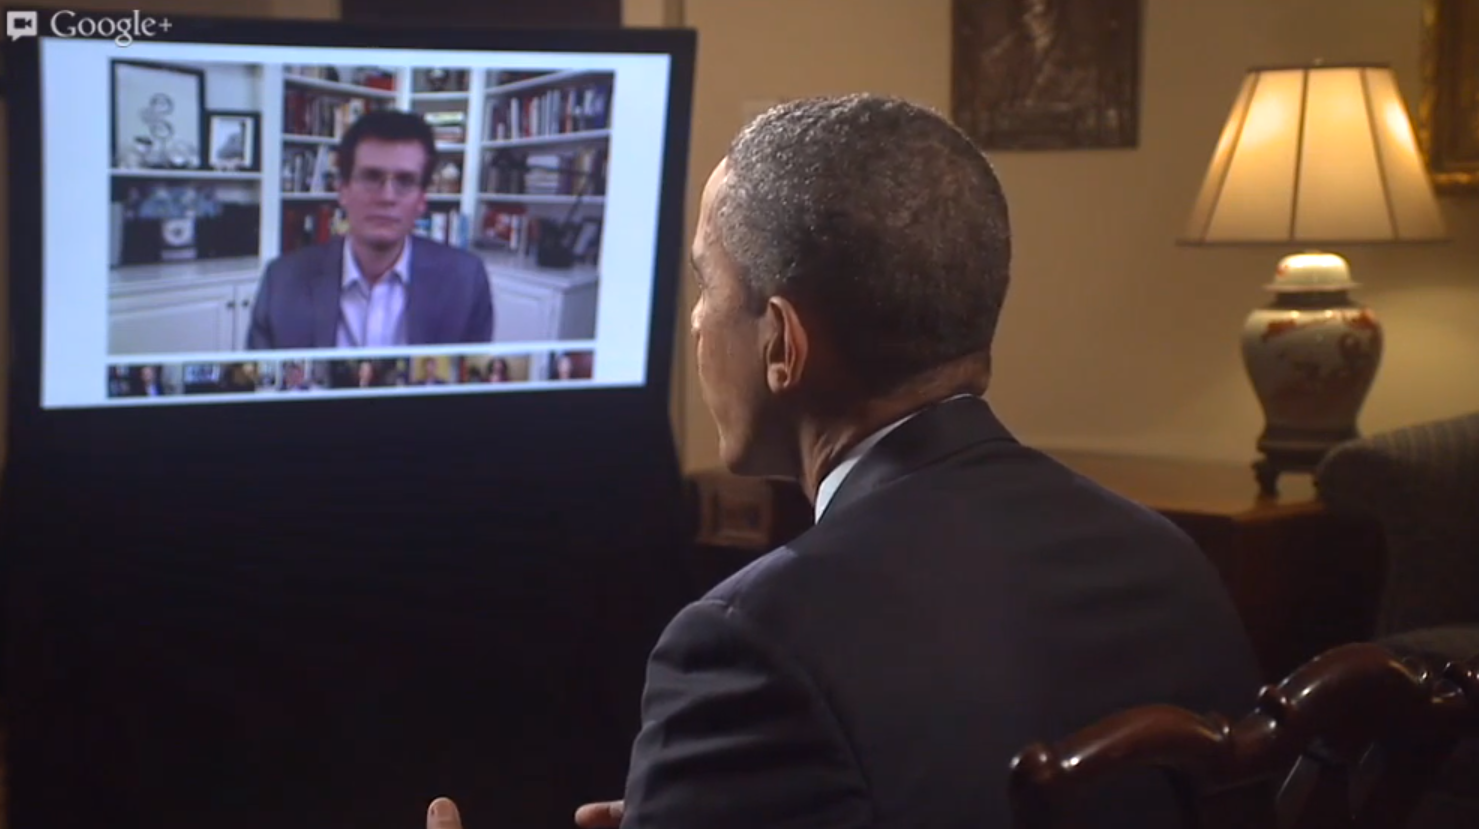 President Obama answers questions today during a Google+ Hangout.